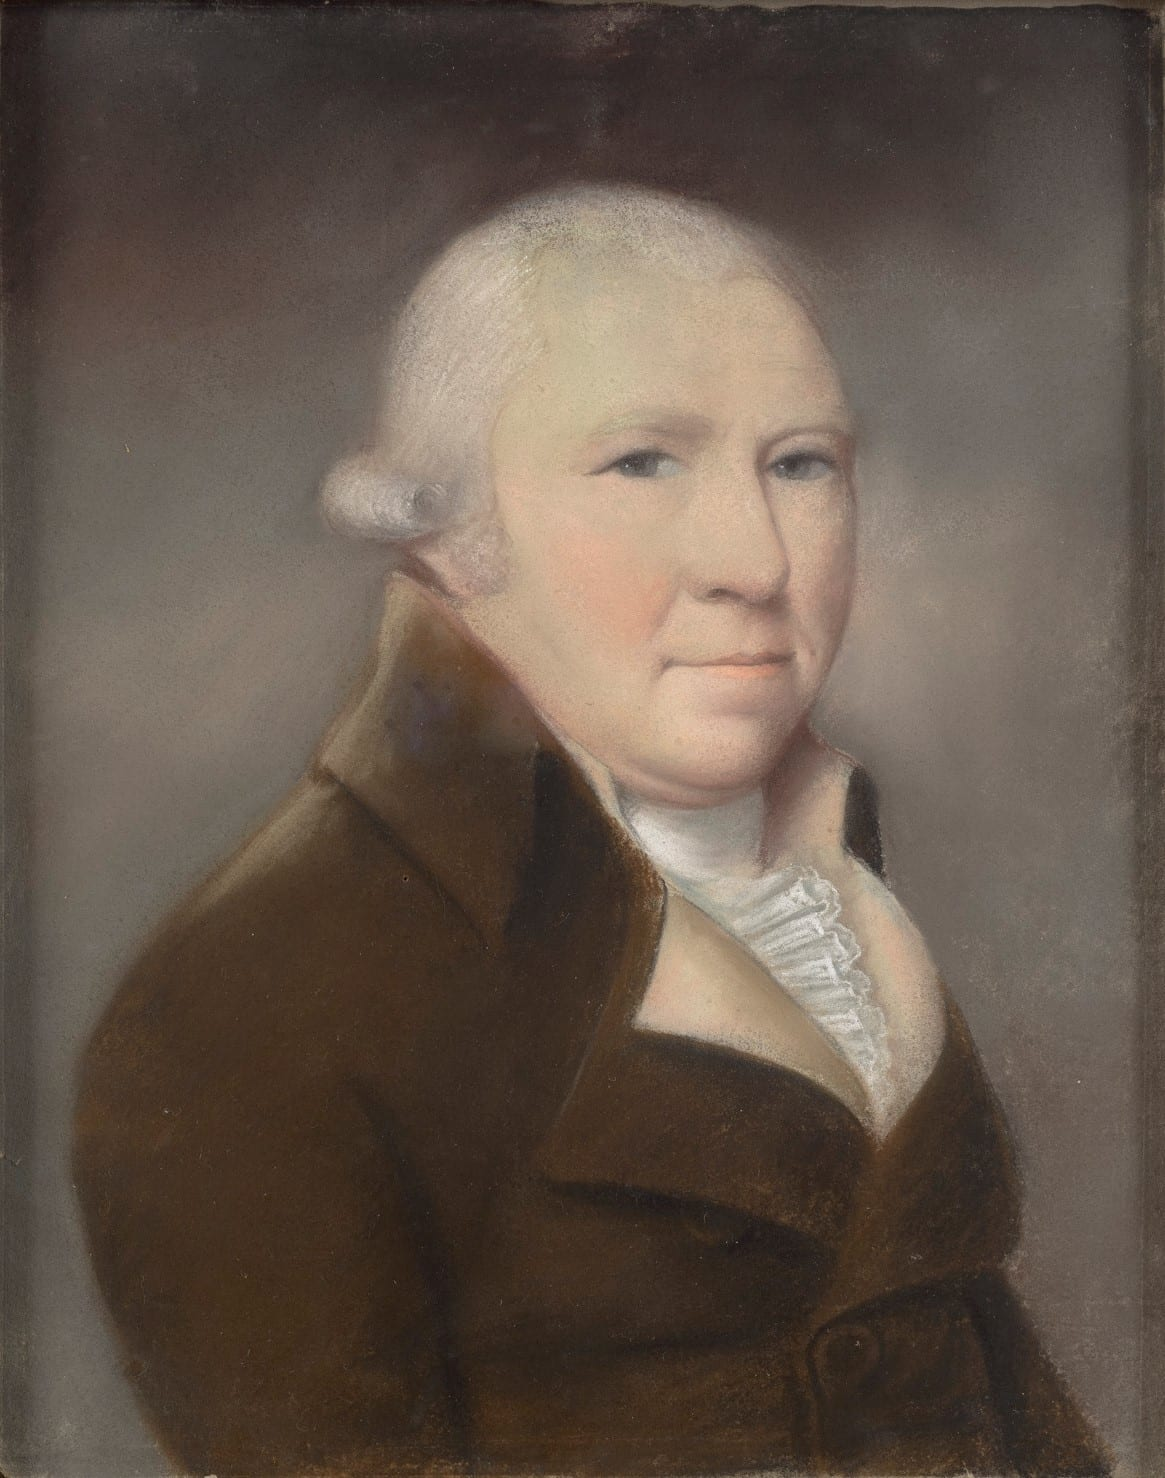 A man with white hair wearing a brown coat sits in three quarter view against a gray background.